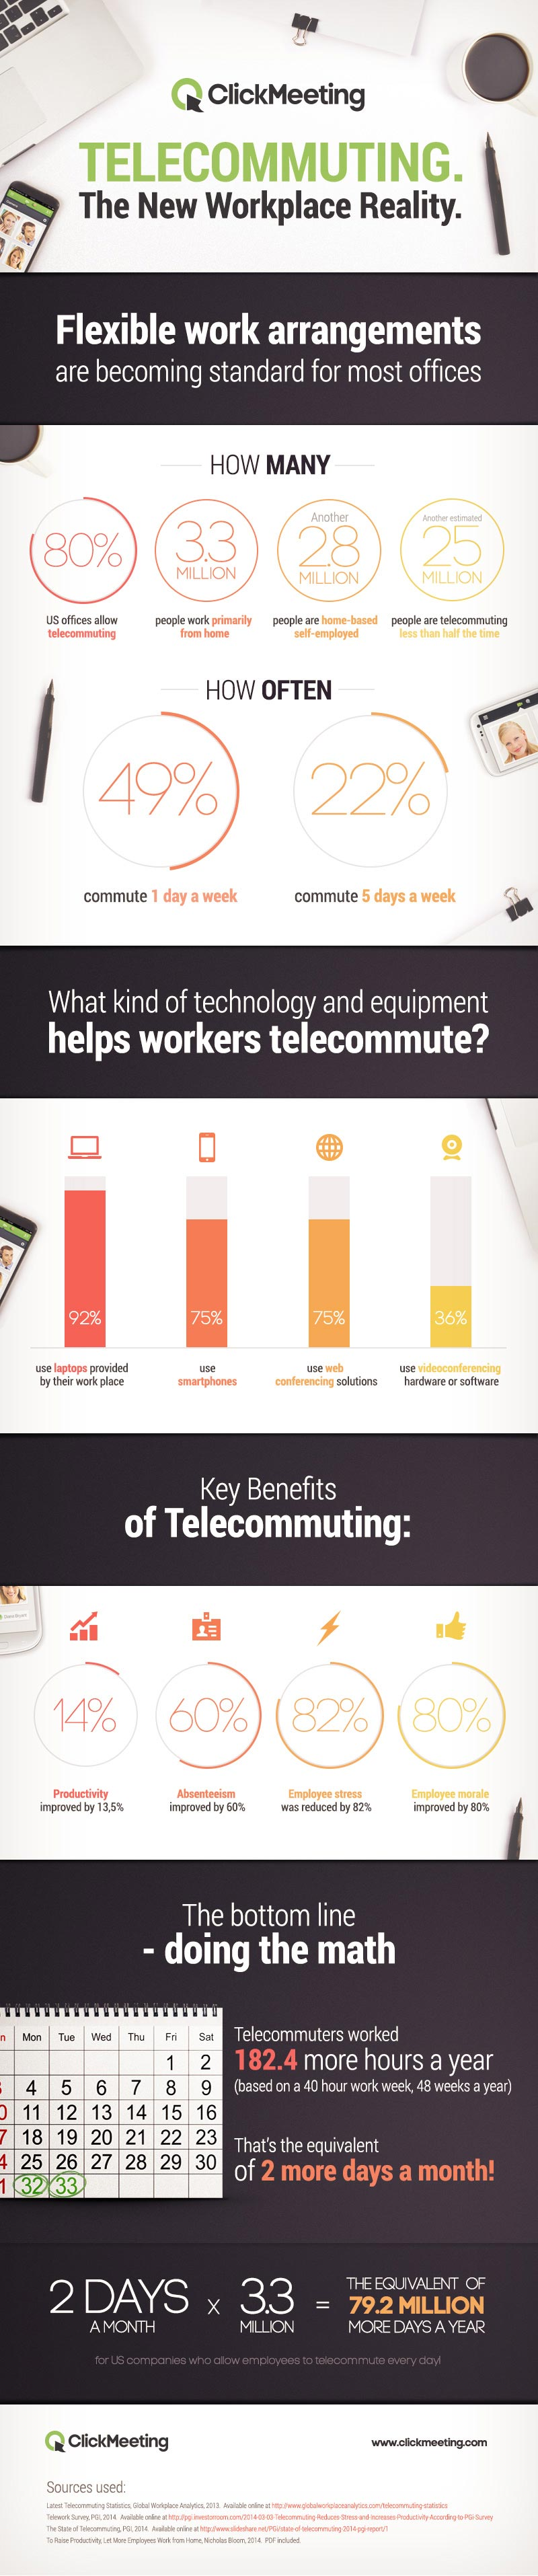 Flexible work arrangements are becoming standard for most offices. 3.3 million people work primarily from home. Another 2.8 million people are home-based self-employed. Another estimated 25 million people are telecommuting less than half the time. That's over 30 million telecommuters! 80% US offices allow telecommuting, 71% of workers participate in a telecommuting program, 49%, commute 1 day a week, 22% commute 5 days a week Who are these telecommuters? The average telecommuter is male, mid to late 40's, earns about $58k annually and works for a company with 100 employees What kind of technology and equipment helps workers telecommute? 92% use laptops provided by their work place, 75% use smartphones, 75% use web conferencing solutions, 36% use videoconferencing hardware or software. Telecommuters were 13.5% more productive than staff in the office. They also put in 9.5% more time.If increased productivity and time spent working isn't convincing enough for employers to institute a telecommuting program, there are other benefits too. Absenteeism improved by 60%, Employee stress was reduced by 82%, Employee morale improved by 80%. Why does telecommuting work so well? 1/3rds of the productivity increase was due to a quieter environment. 2/3rds of the productivity increase was due to people working more hours – they started earlier, took shorter breaks and worked until the end of the day. The bottom line - doing the math. Telecommuters worked: 3.8 more hours a week, 15.2 more hours a month, 182.4 more hours a year (based on a 40 hour work week, 48 weeks a year). That means telecommuting employees worked the equivalent of 2 more days a month! Two days a month X 3.3 million = the equivalent of 79.2 million more days a year for US companies who allow employees to telecommute every day!